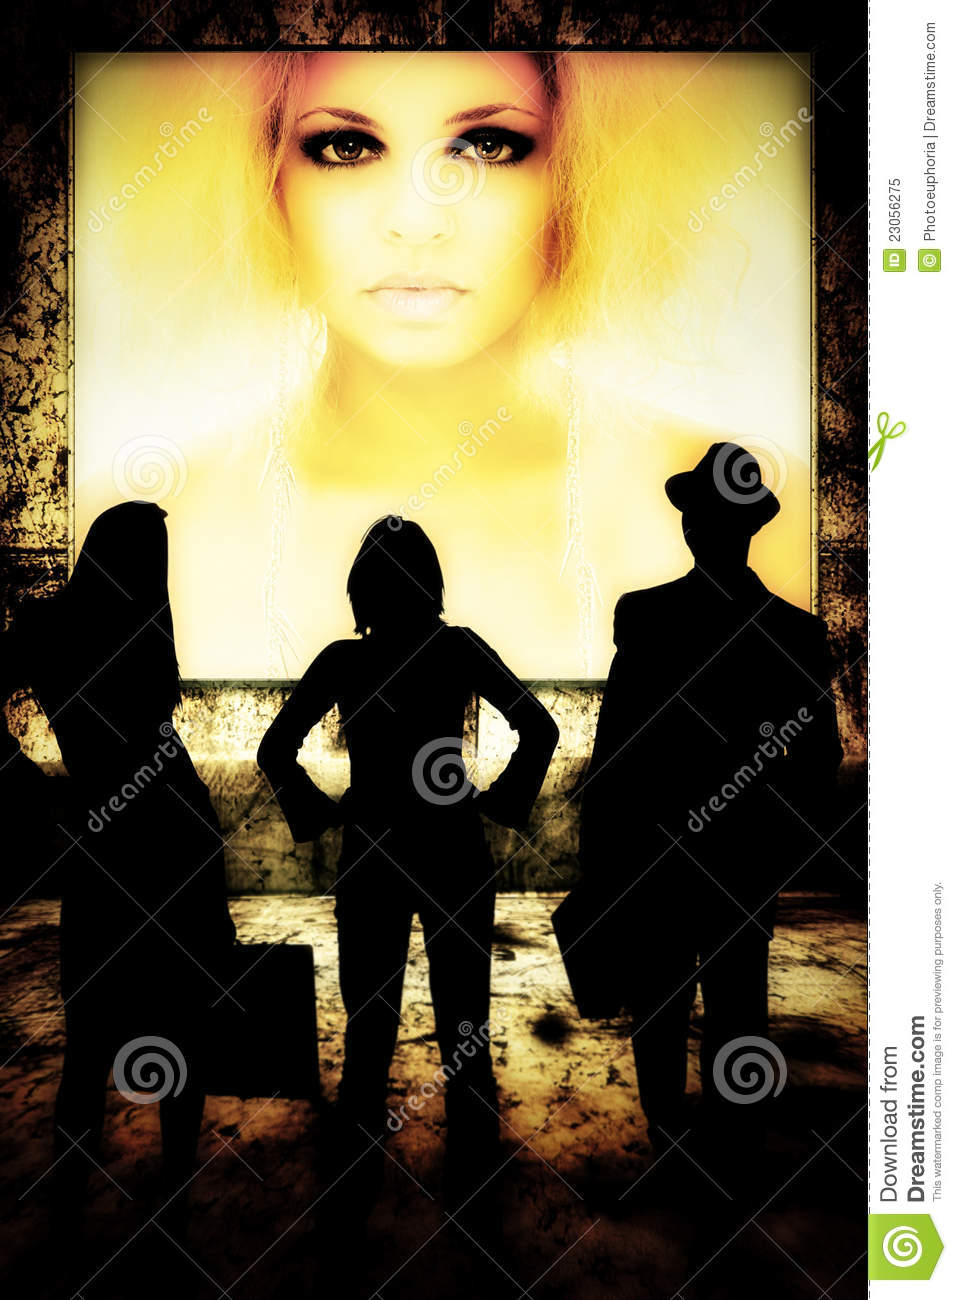 Women and man standing in front of young woman on